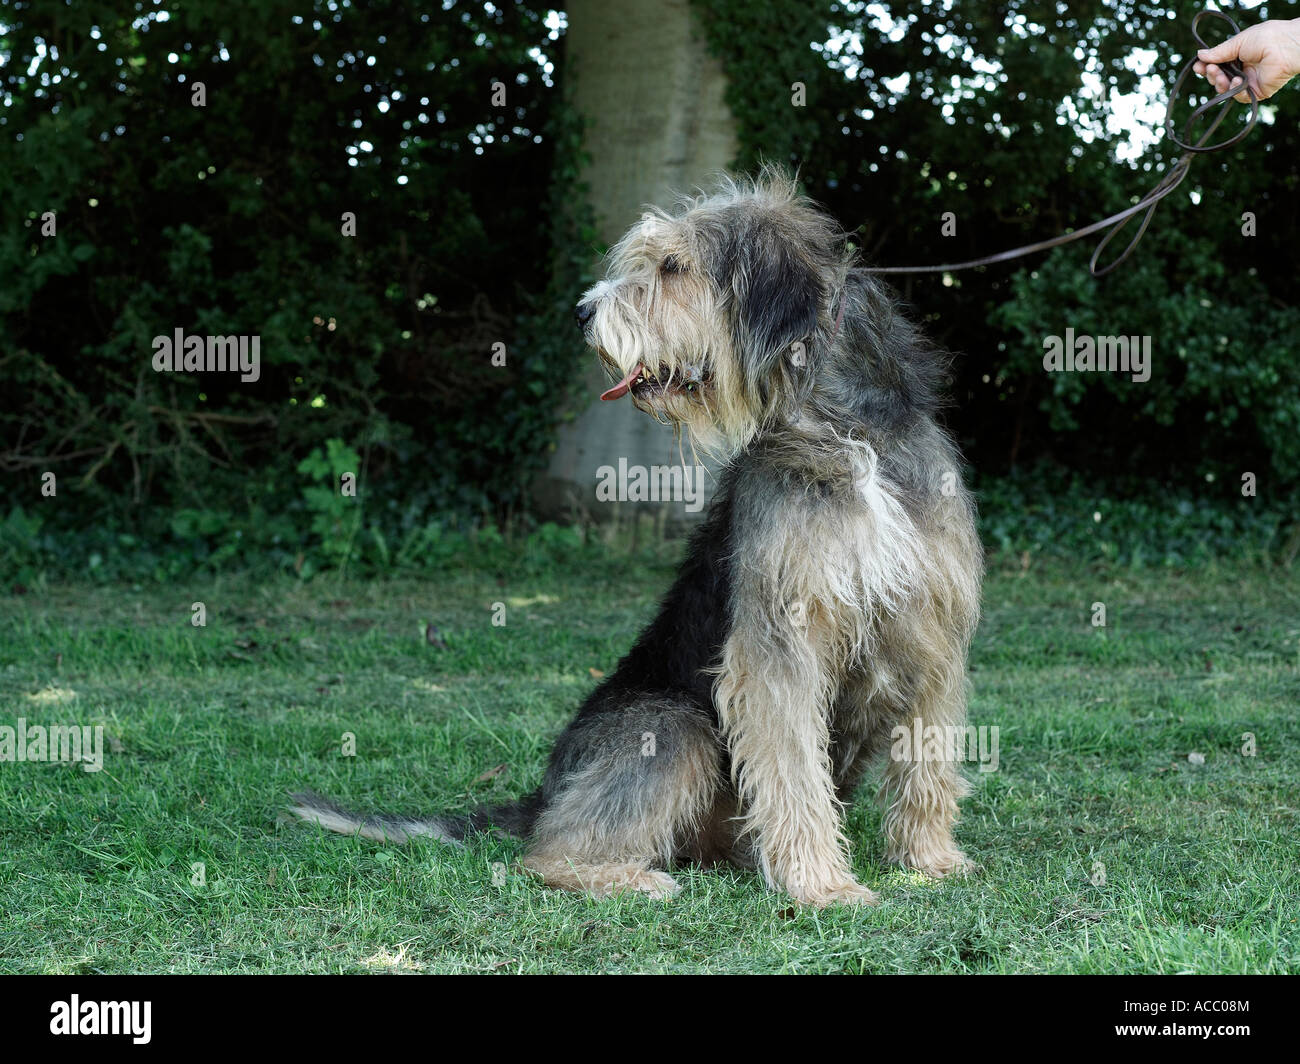 An otterhound on a lead, being disobedient. - Stock Image